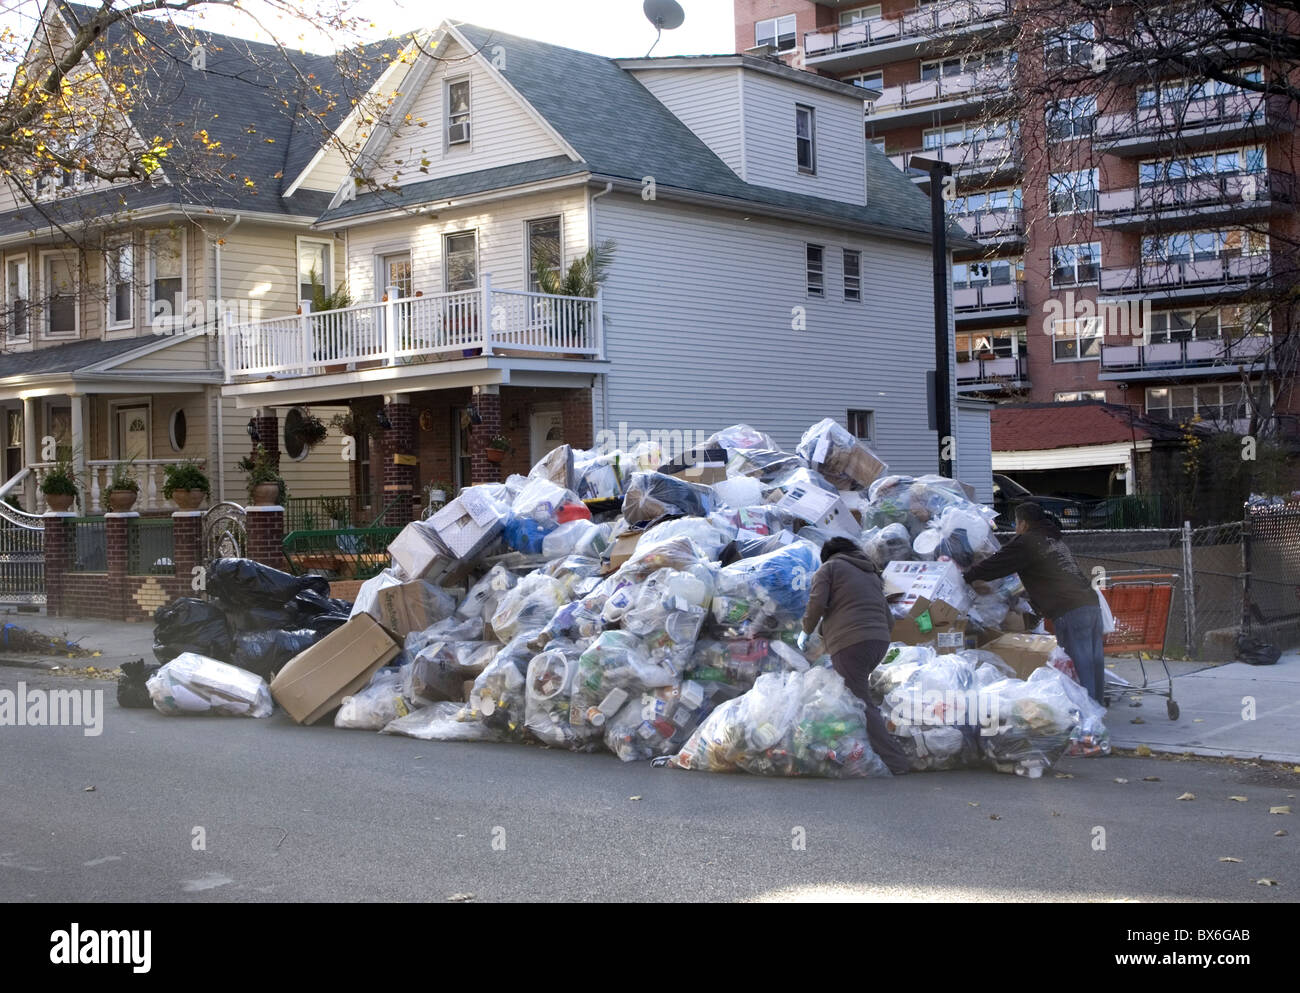 Mountains of recyclable garbage waiting to be picked up from building in background in Brooklyn, New York - Stock Image